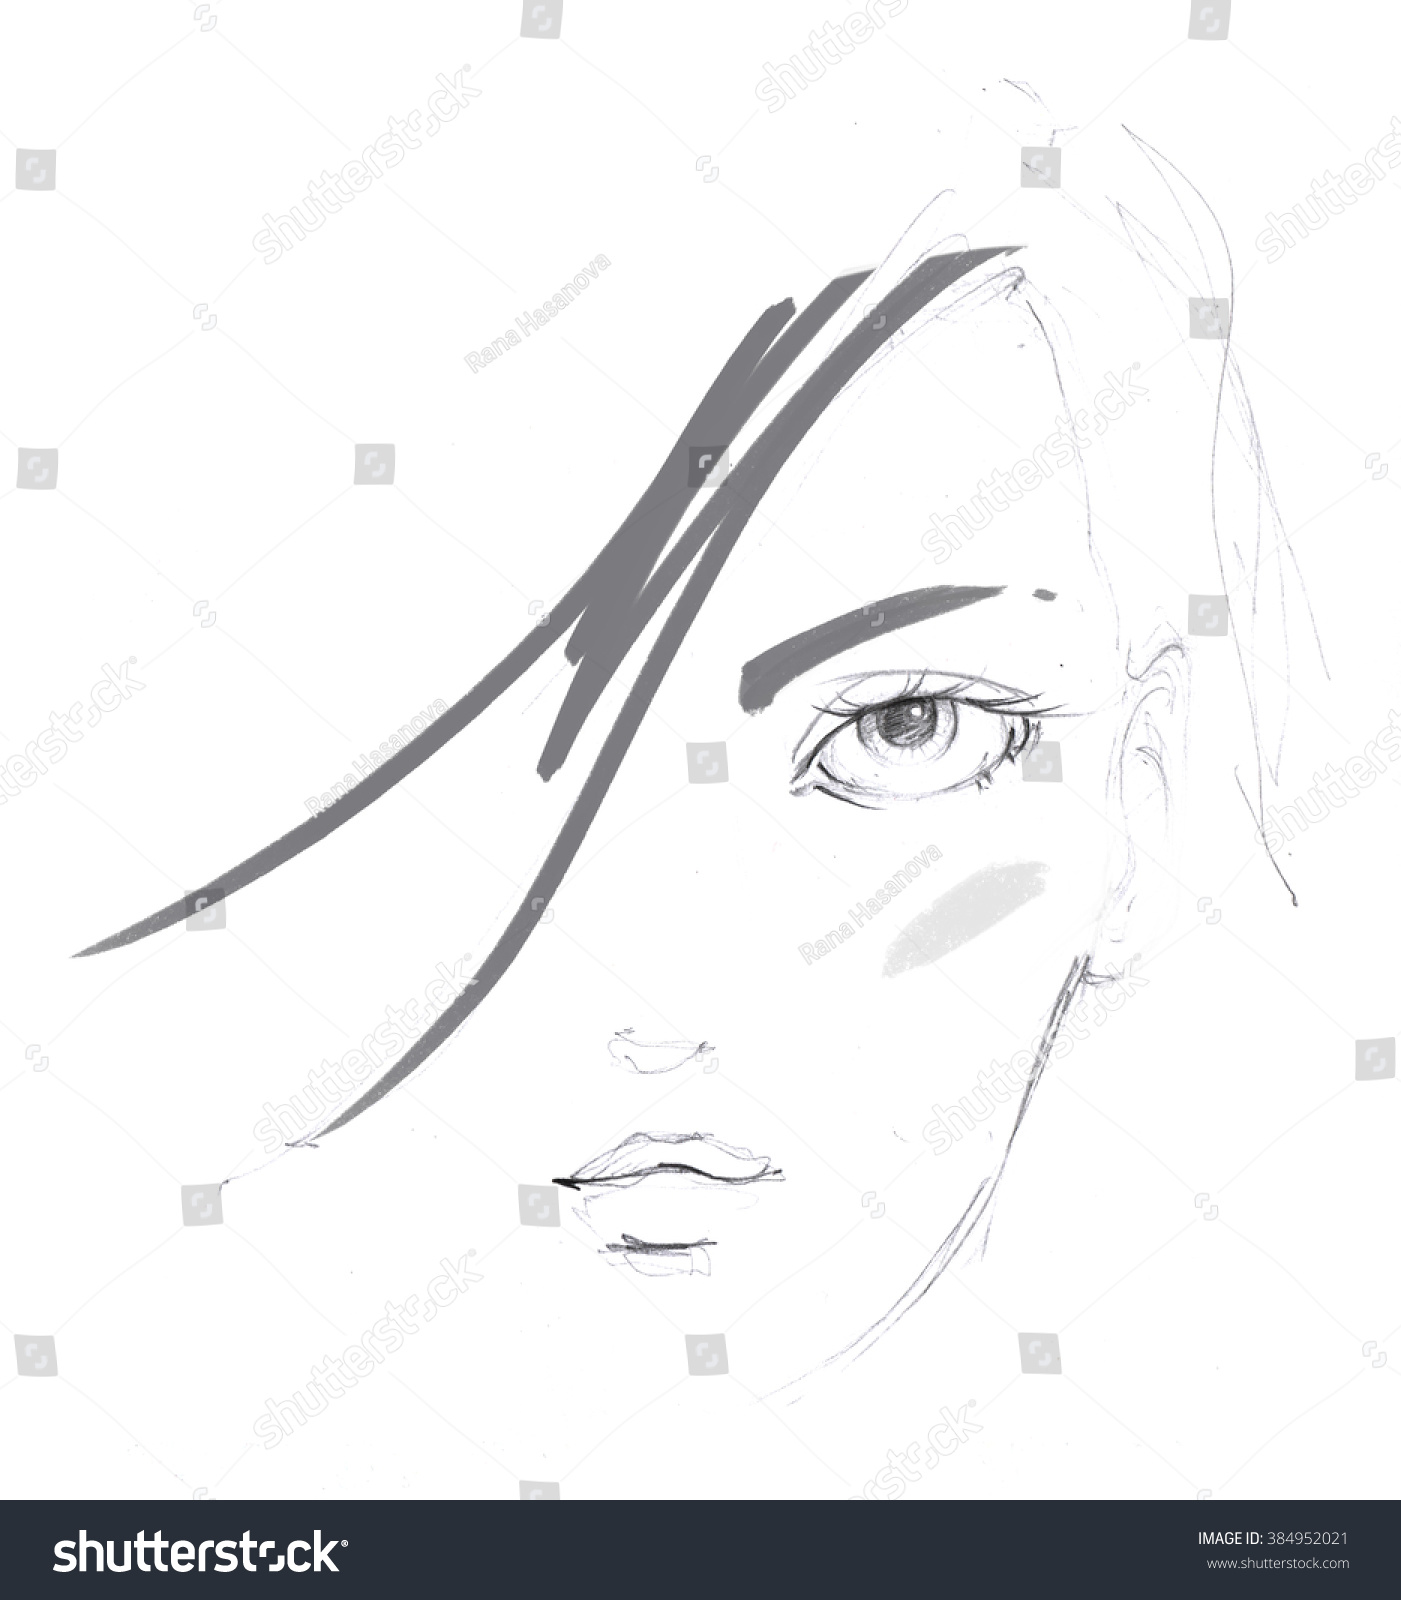 Fashion portrait drawing sketch illustration of a young woman face hand drawn fashion model face ink pencil womens day postcard illustration